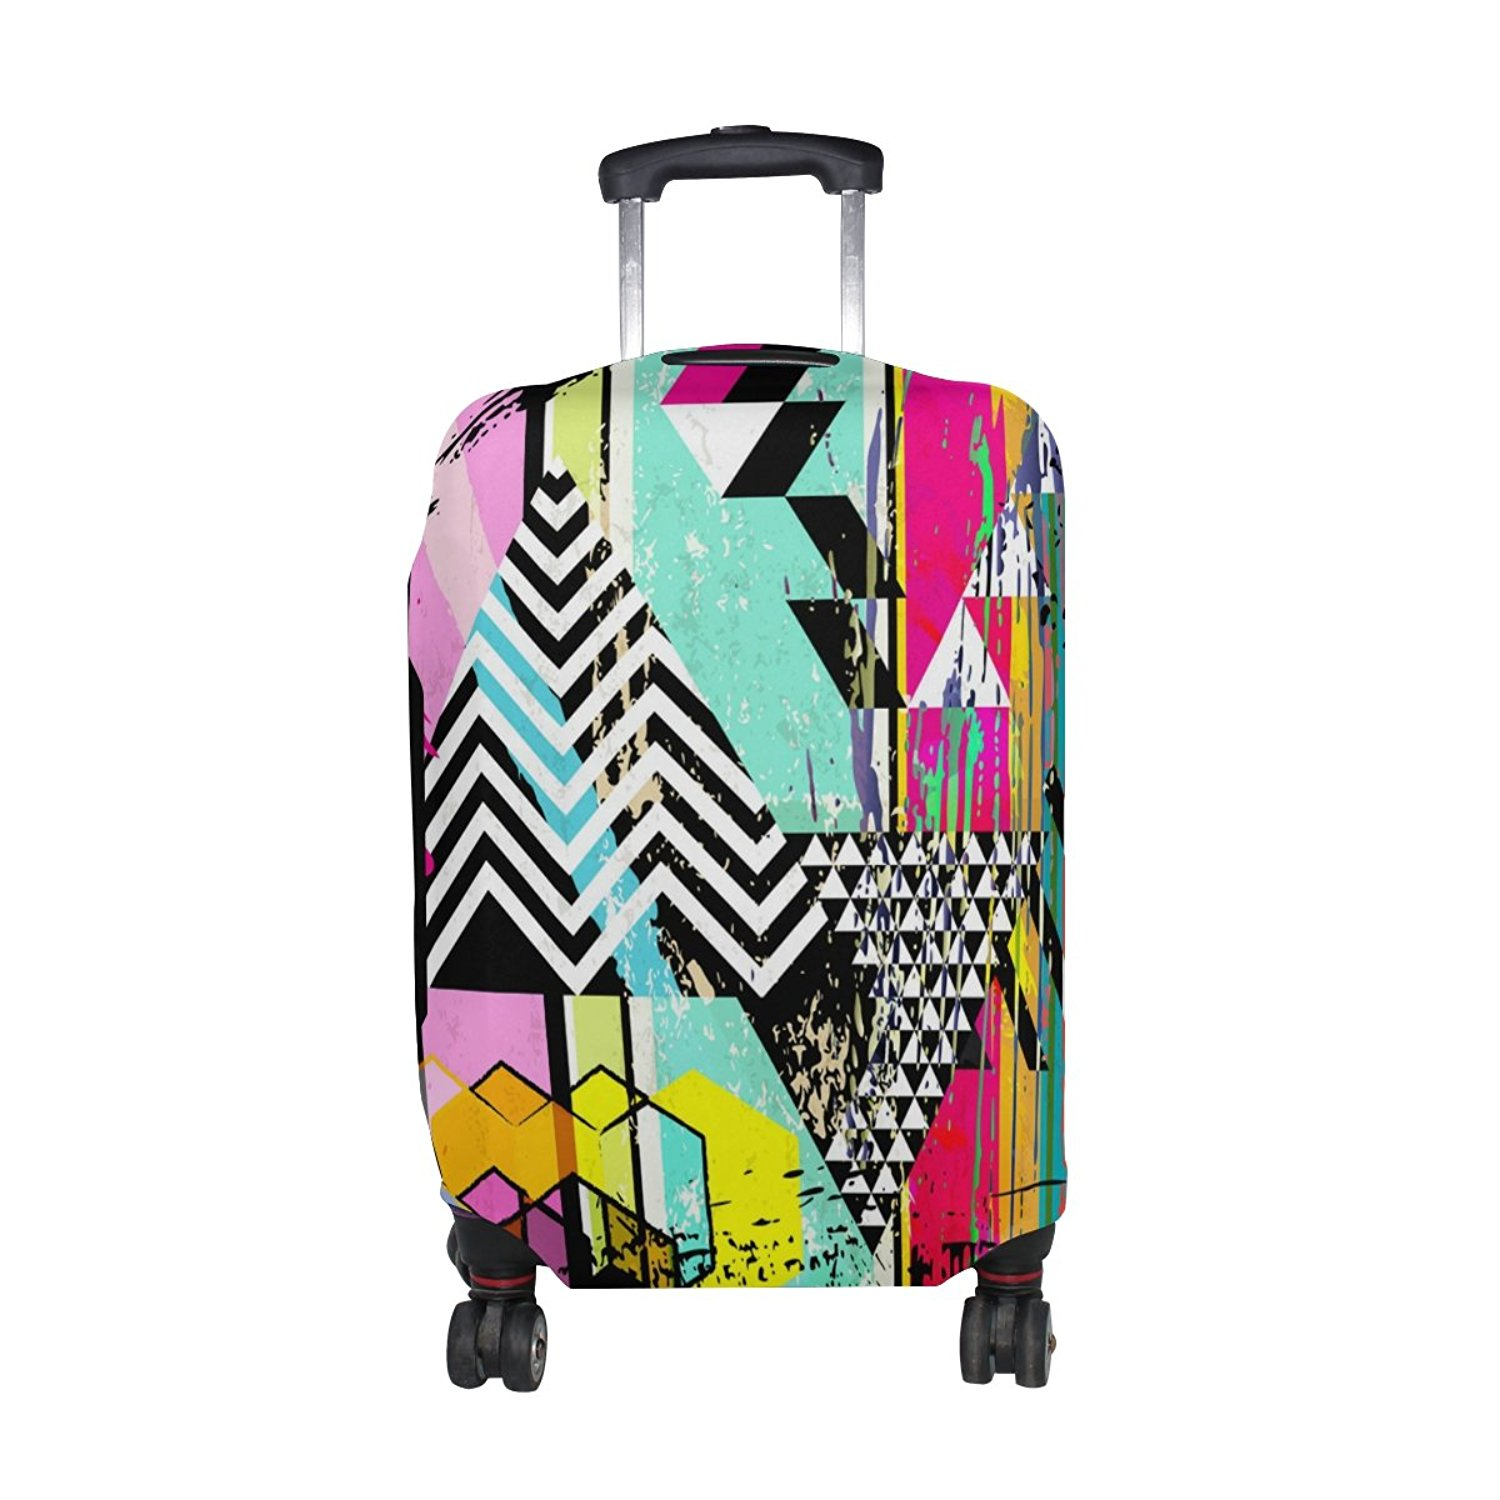 FOLPPLY Colourful Stripe Luggage Cover Baggage Suitcase Travel Protector Fit for 18-32 Inch